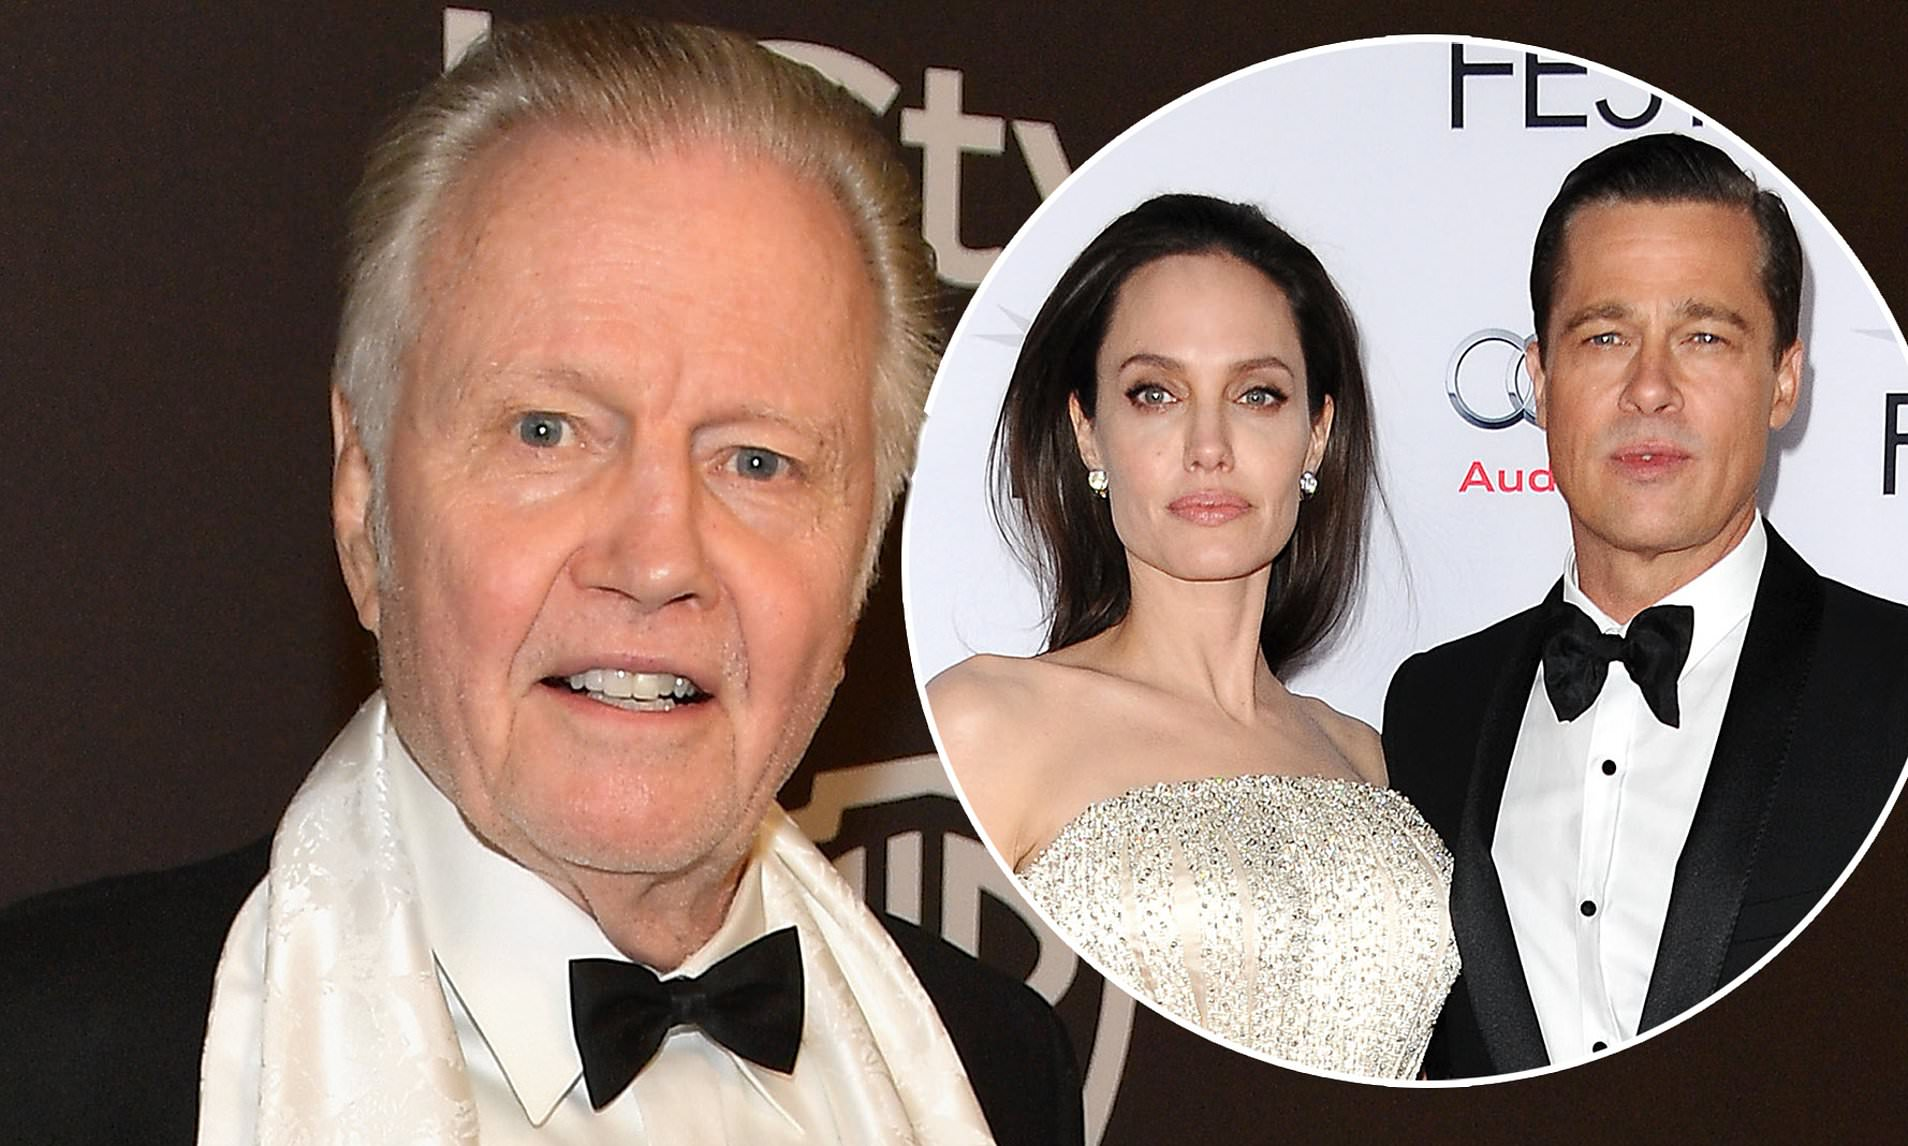 Angelina Jolie Father Jon Voight Adoption of Her Son Maddox Back in 2002!